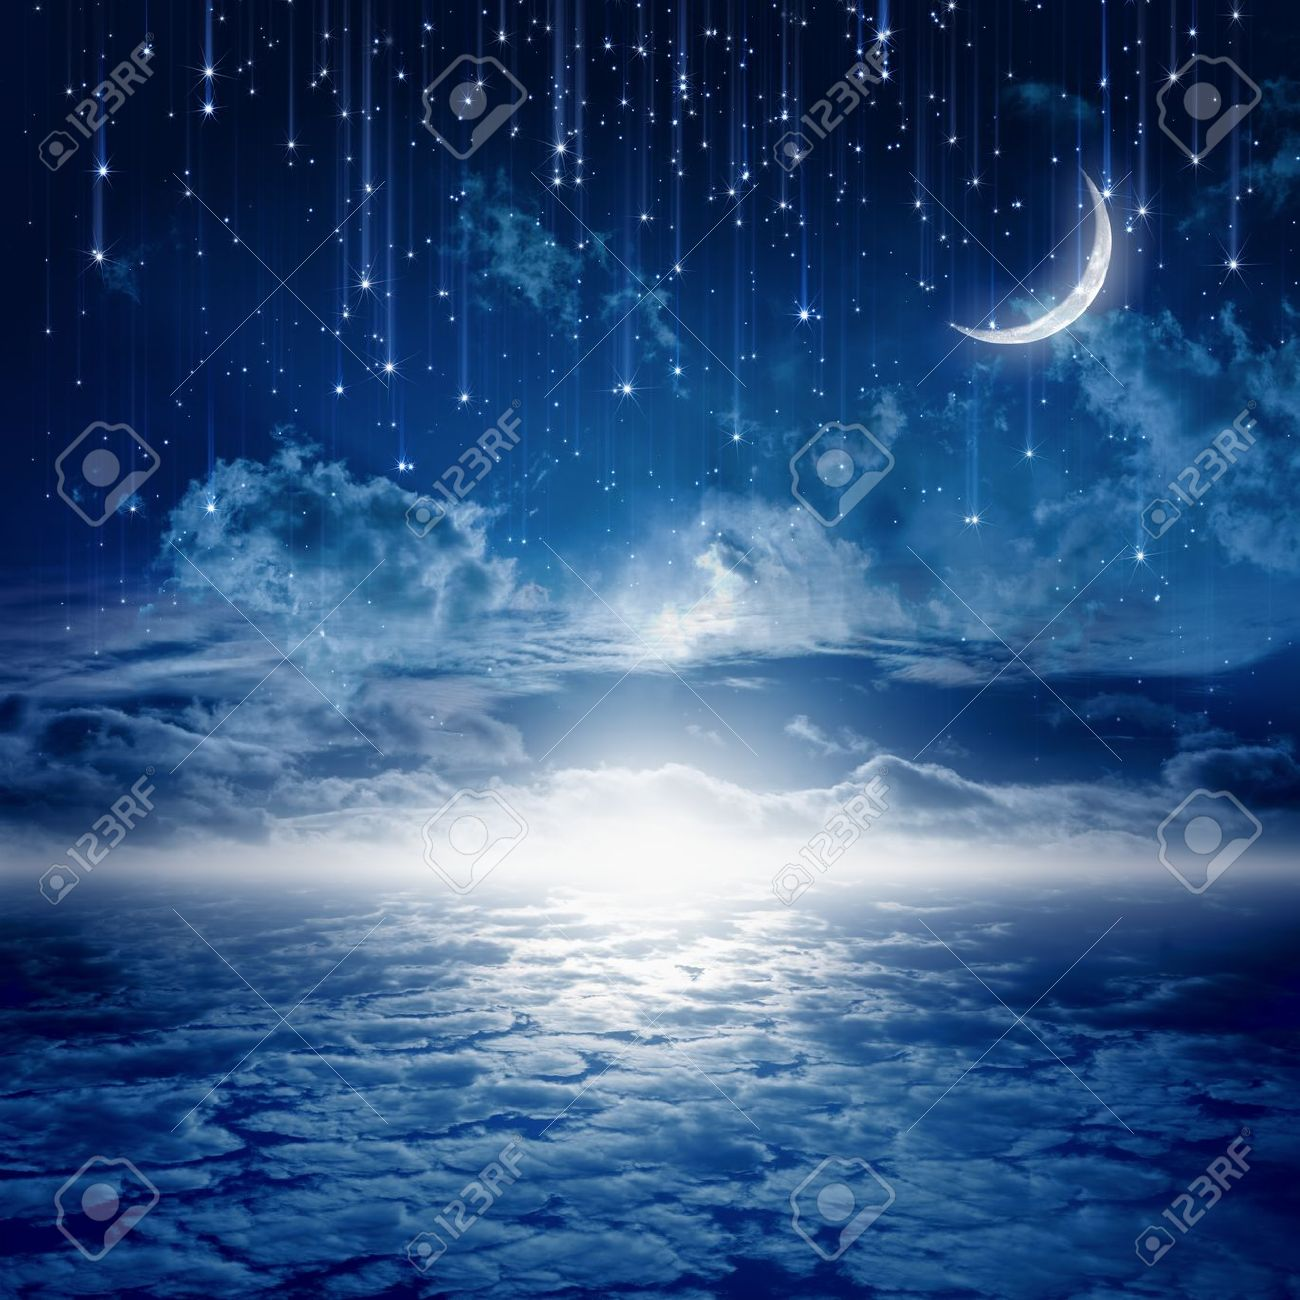 Peaceful background, blue night sky with moon, stars, beautiful clouds, glowing horizon. Elements of this image furnished by NASA - 17842450